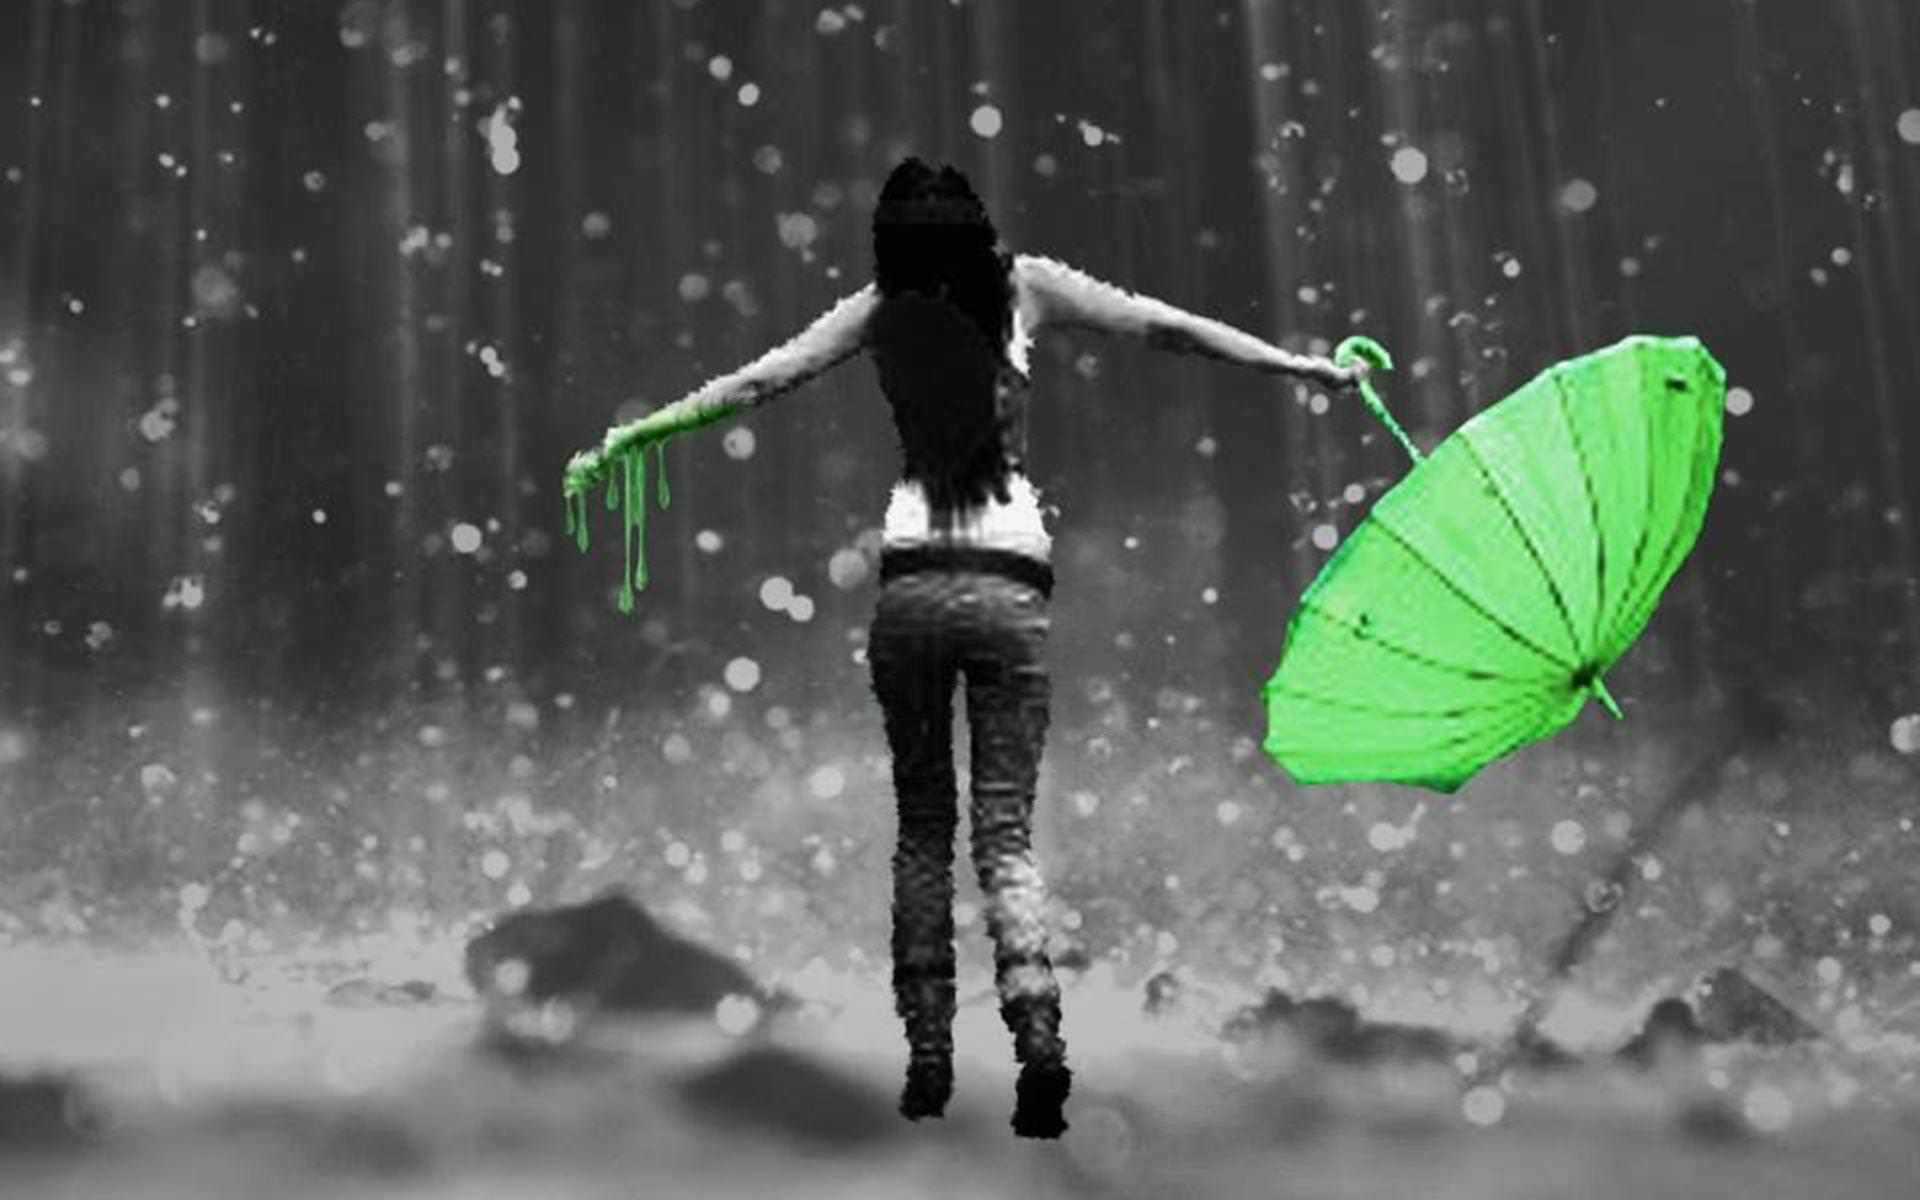 Rain Love Girl Wallpaper : Images Of Rain Wallpapers (37 Wallpapers) Adorable ...